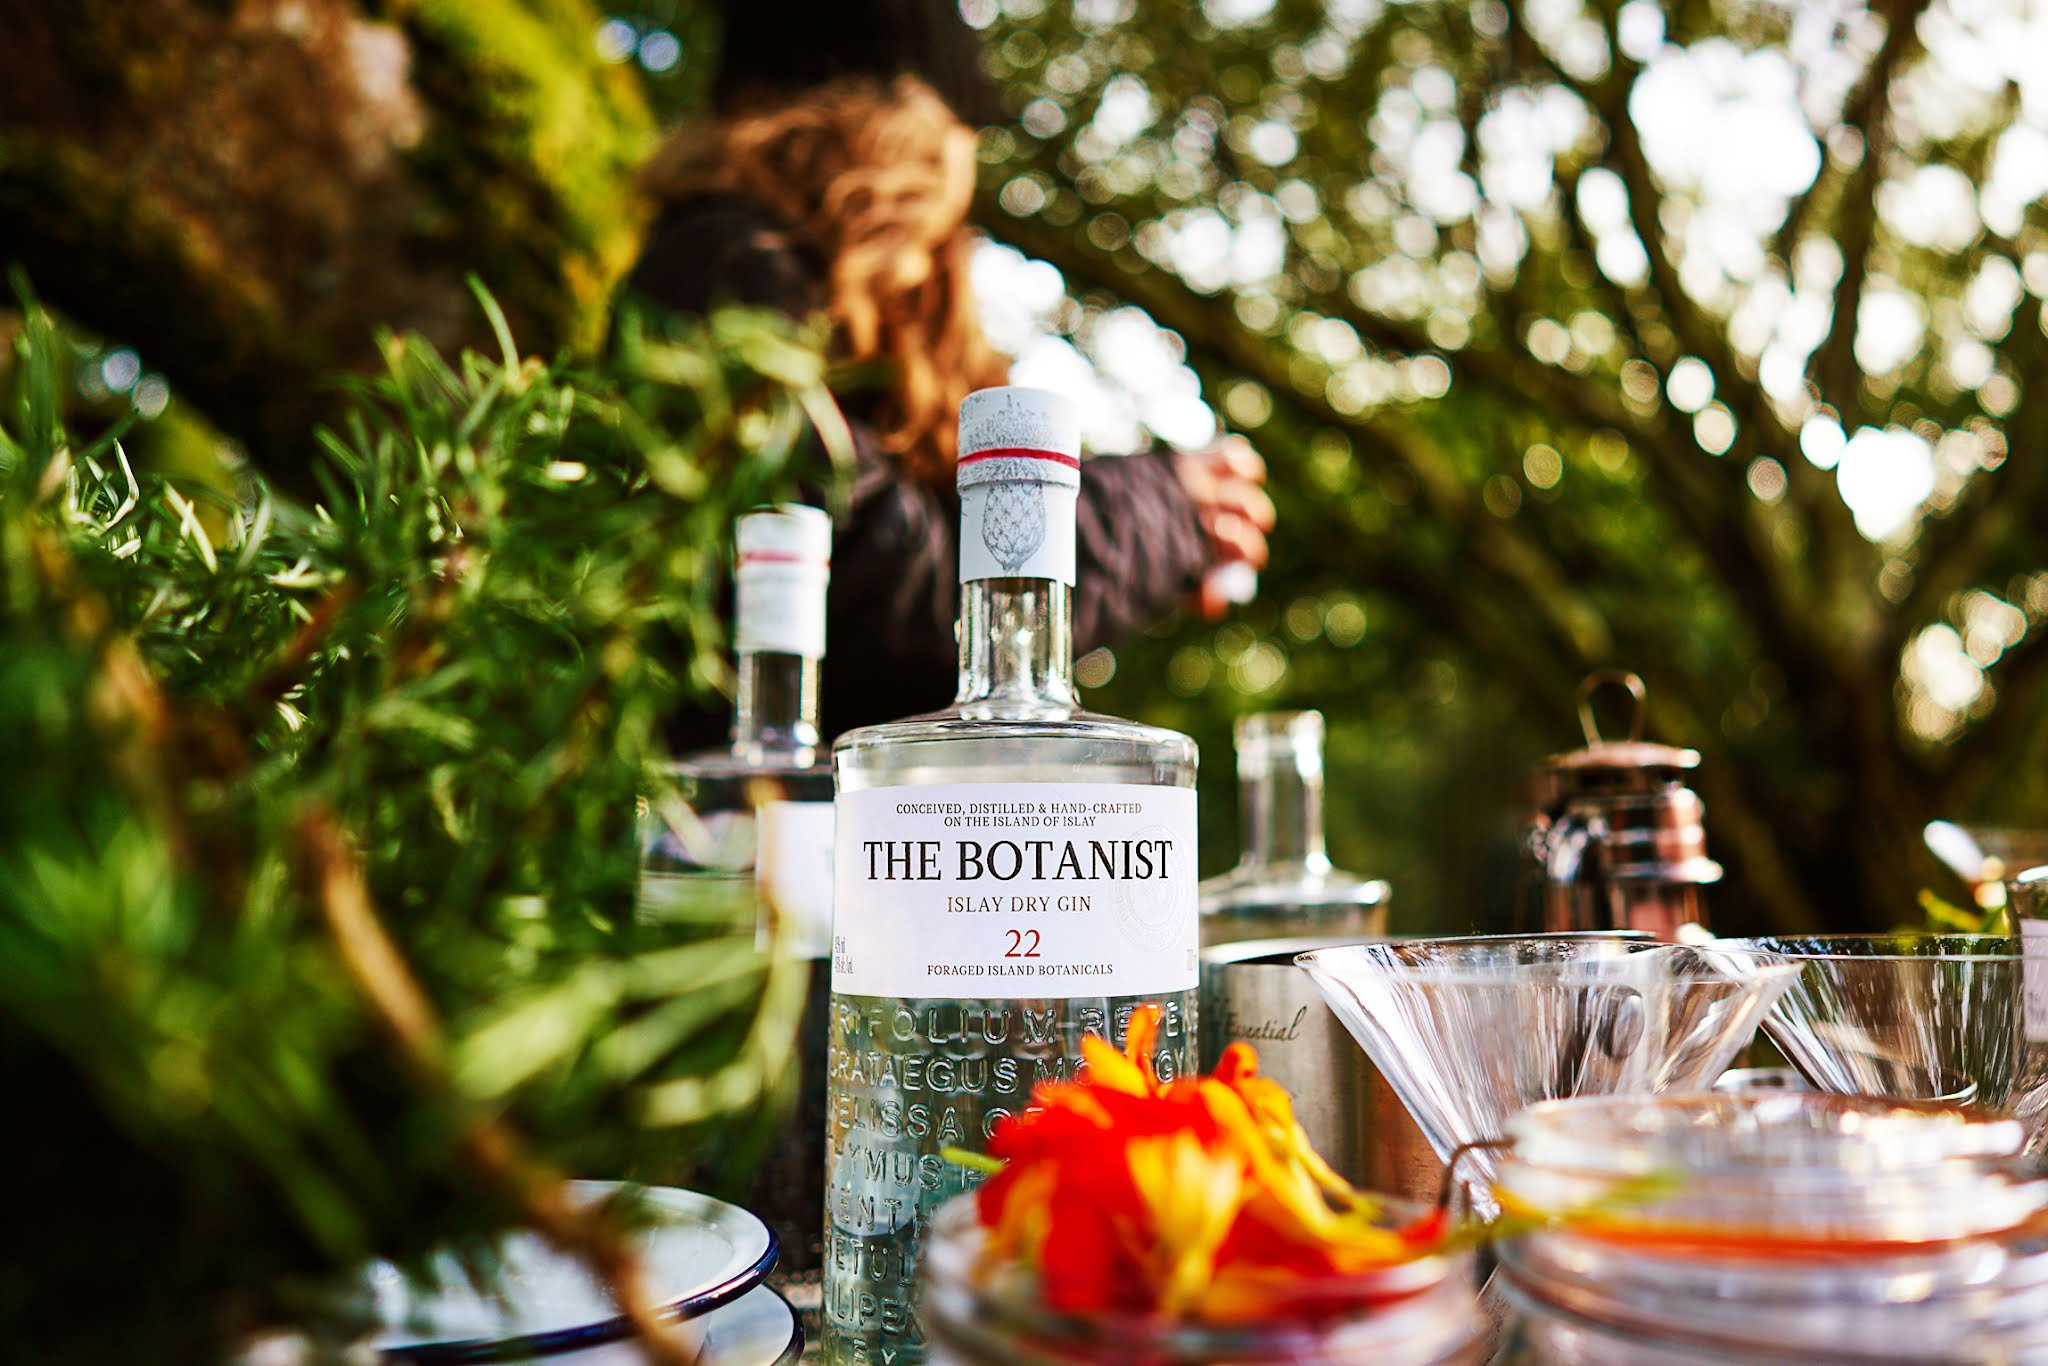 rémy martin & the botanist: a few ways to let love flow for wife appreciation day